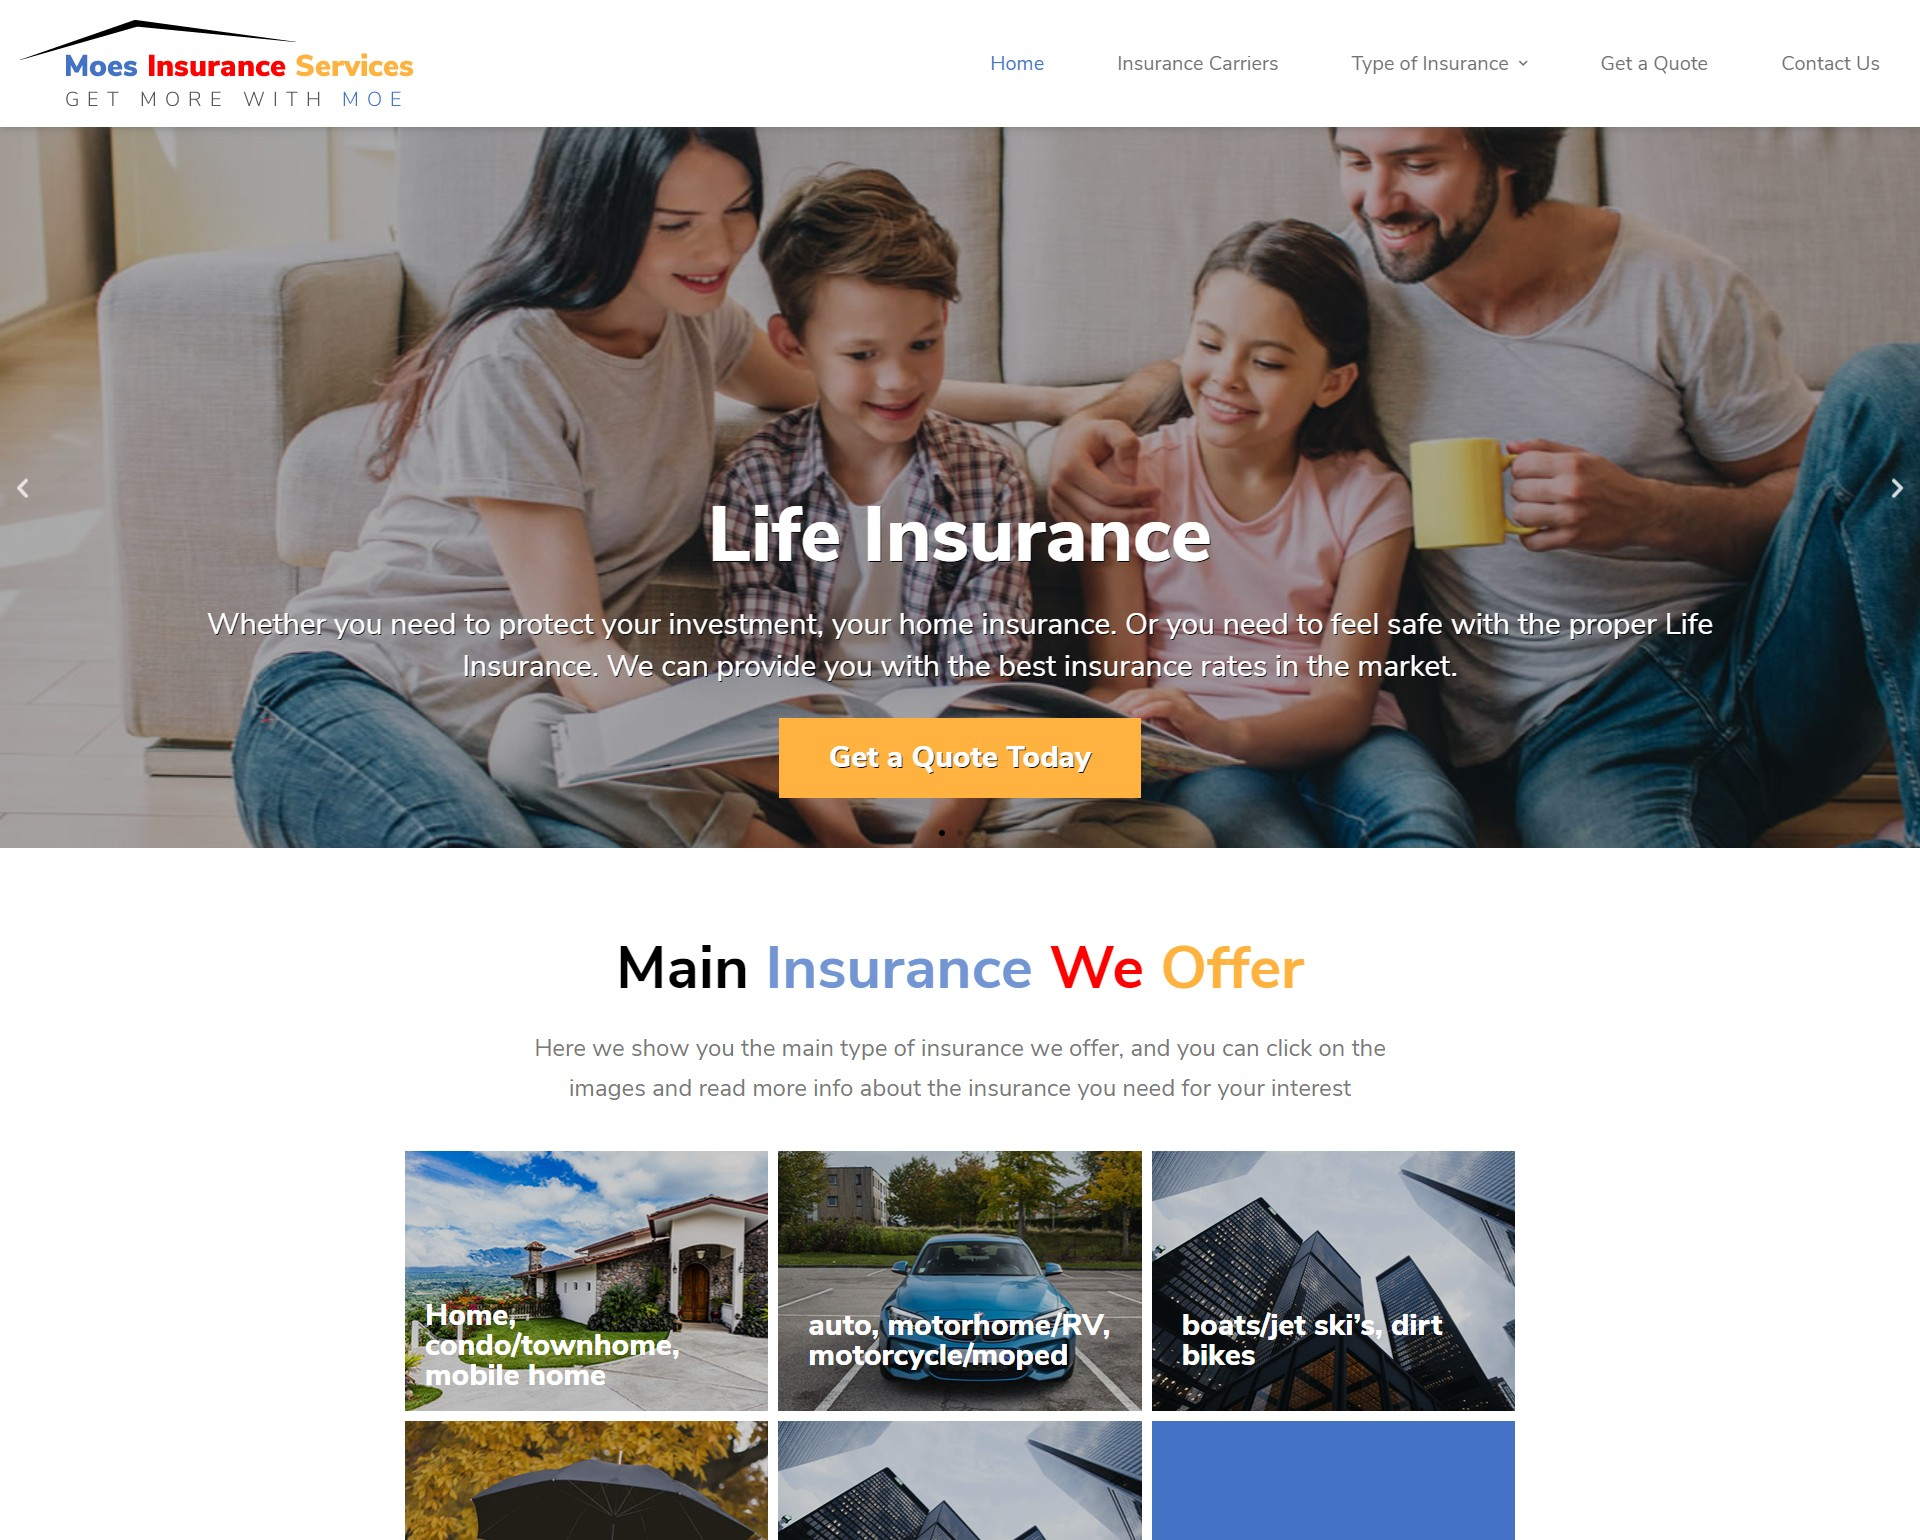 screencapture moesinsuranceservices 2020 08 04 18 00 11 1